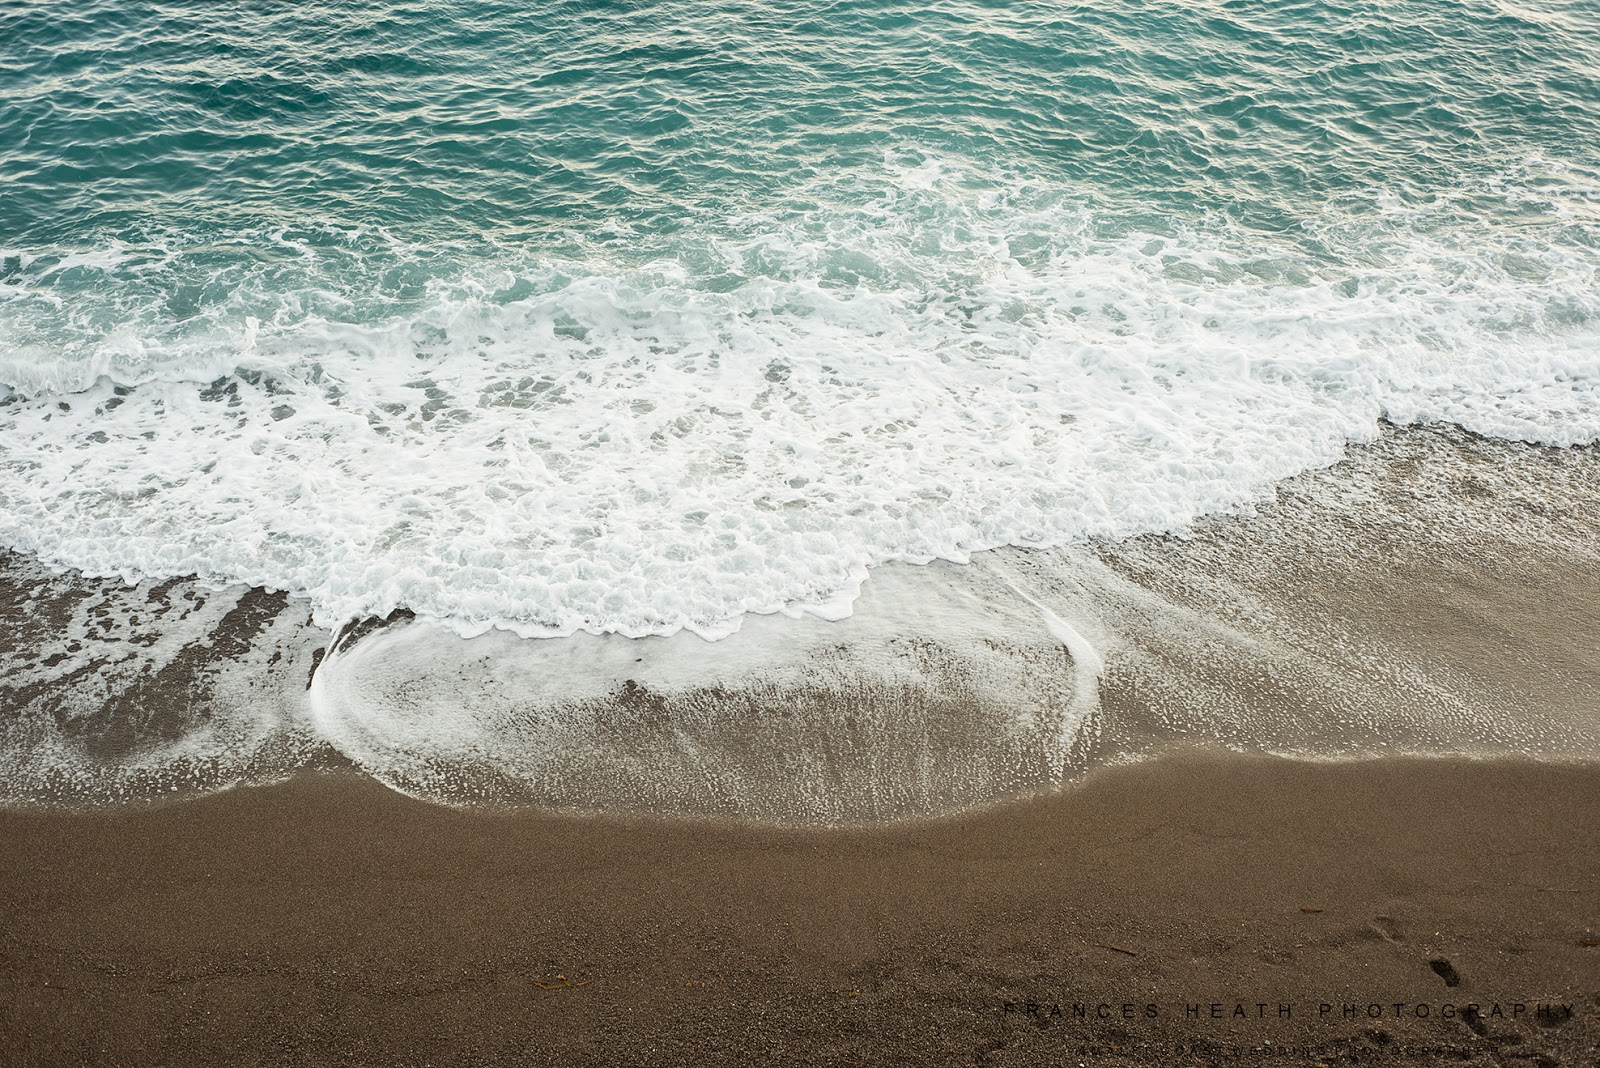 Waves on Positano beach